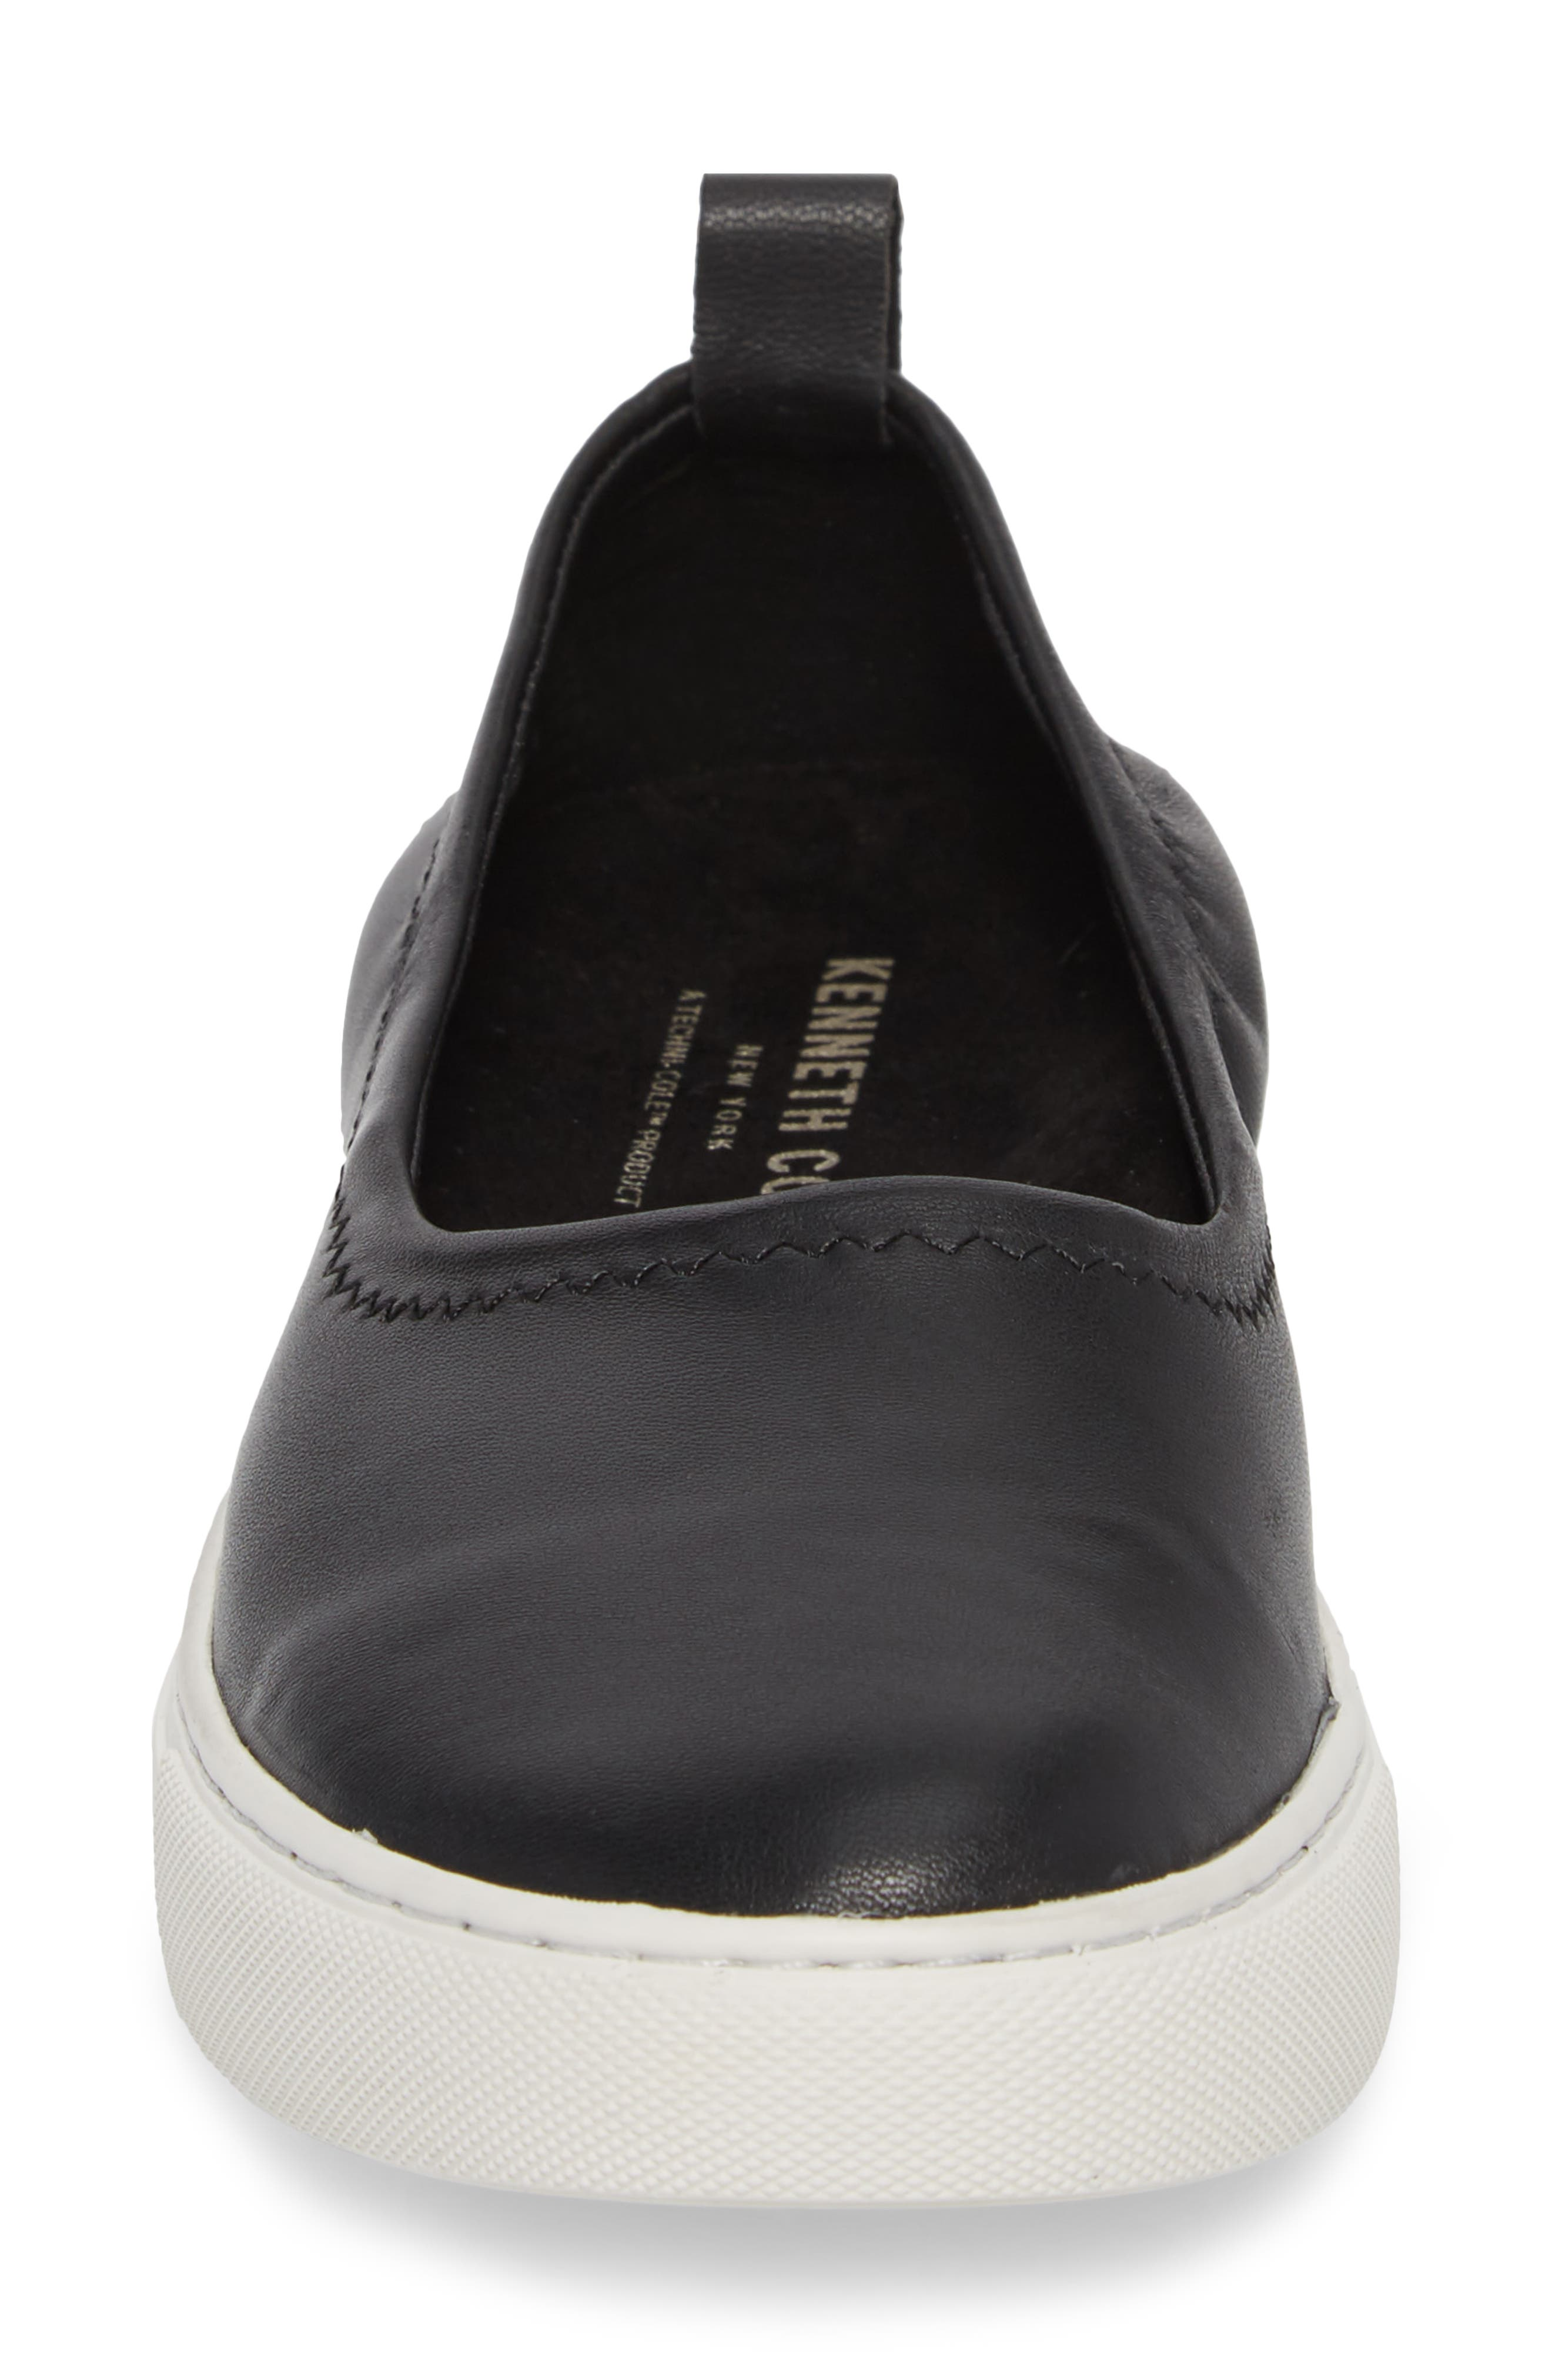 Kam Techni-Cole Ballet Flat,                             Alternate thumbnail 4, color,                             Black Leather